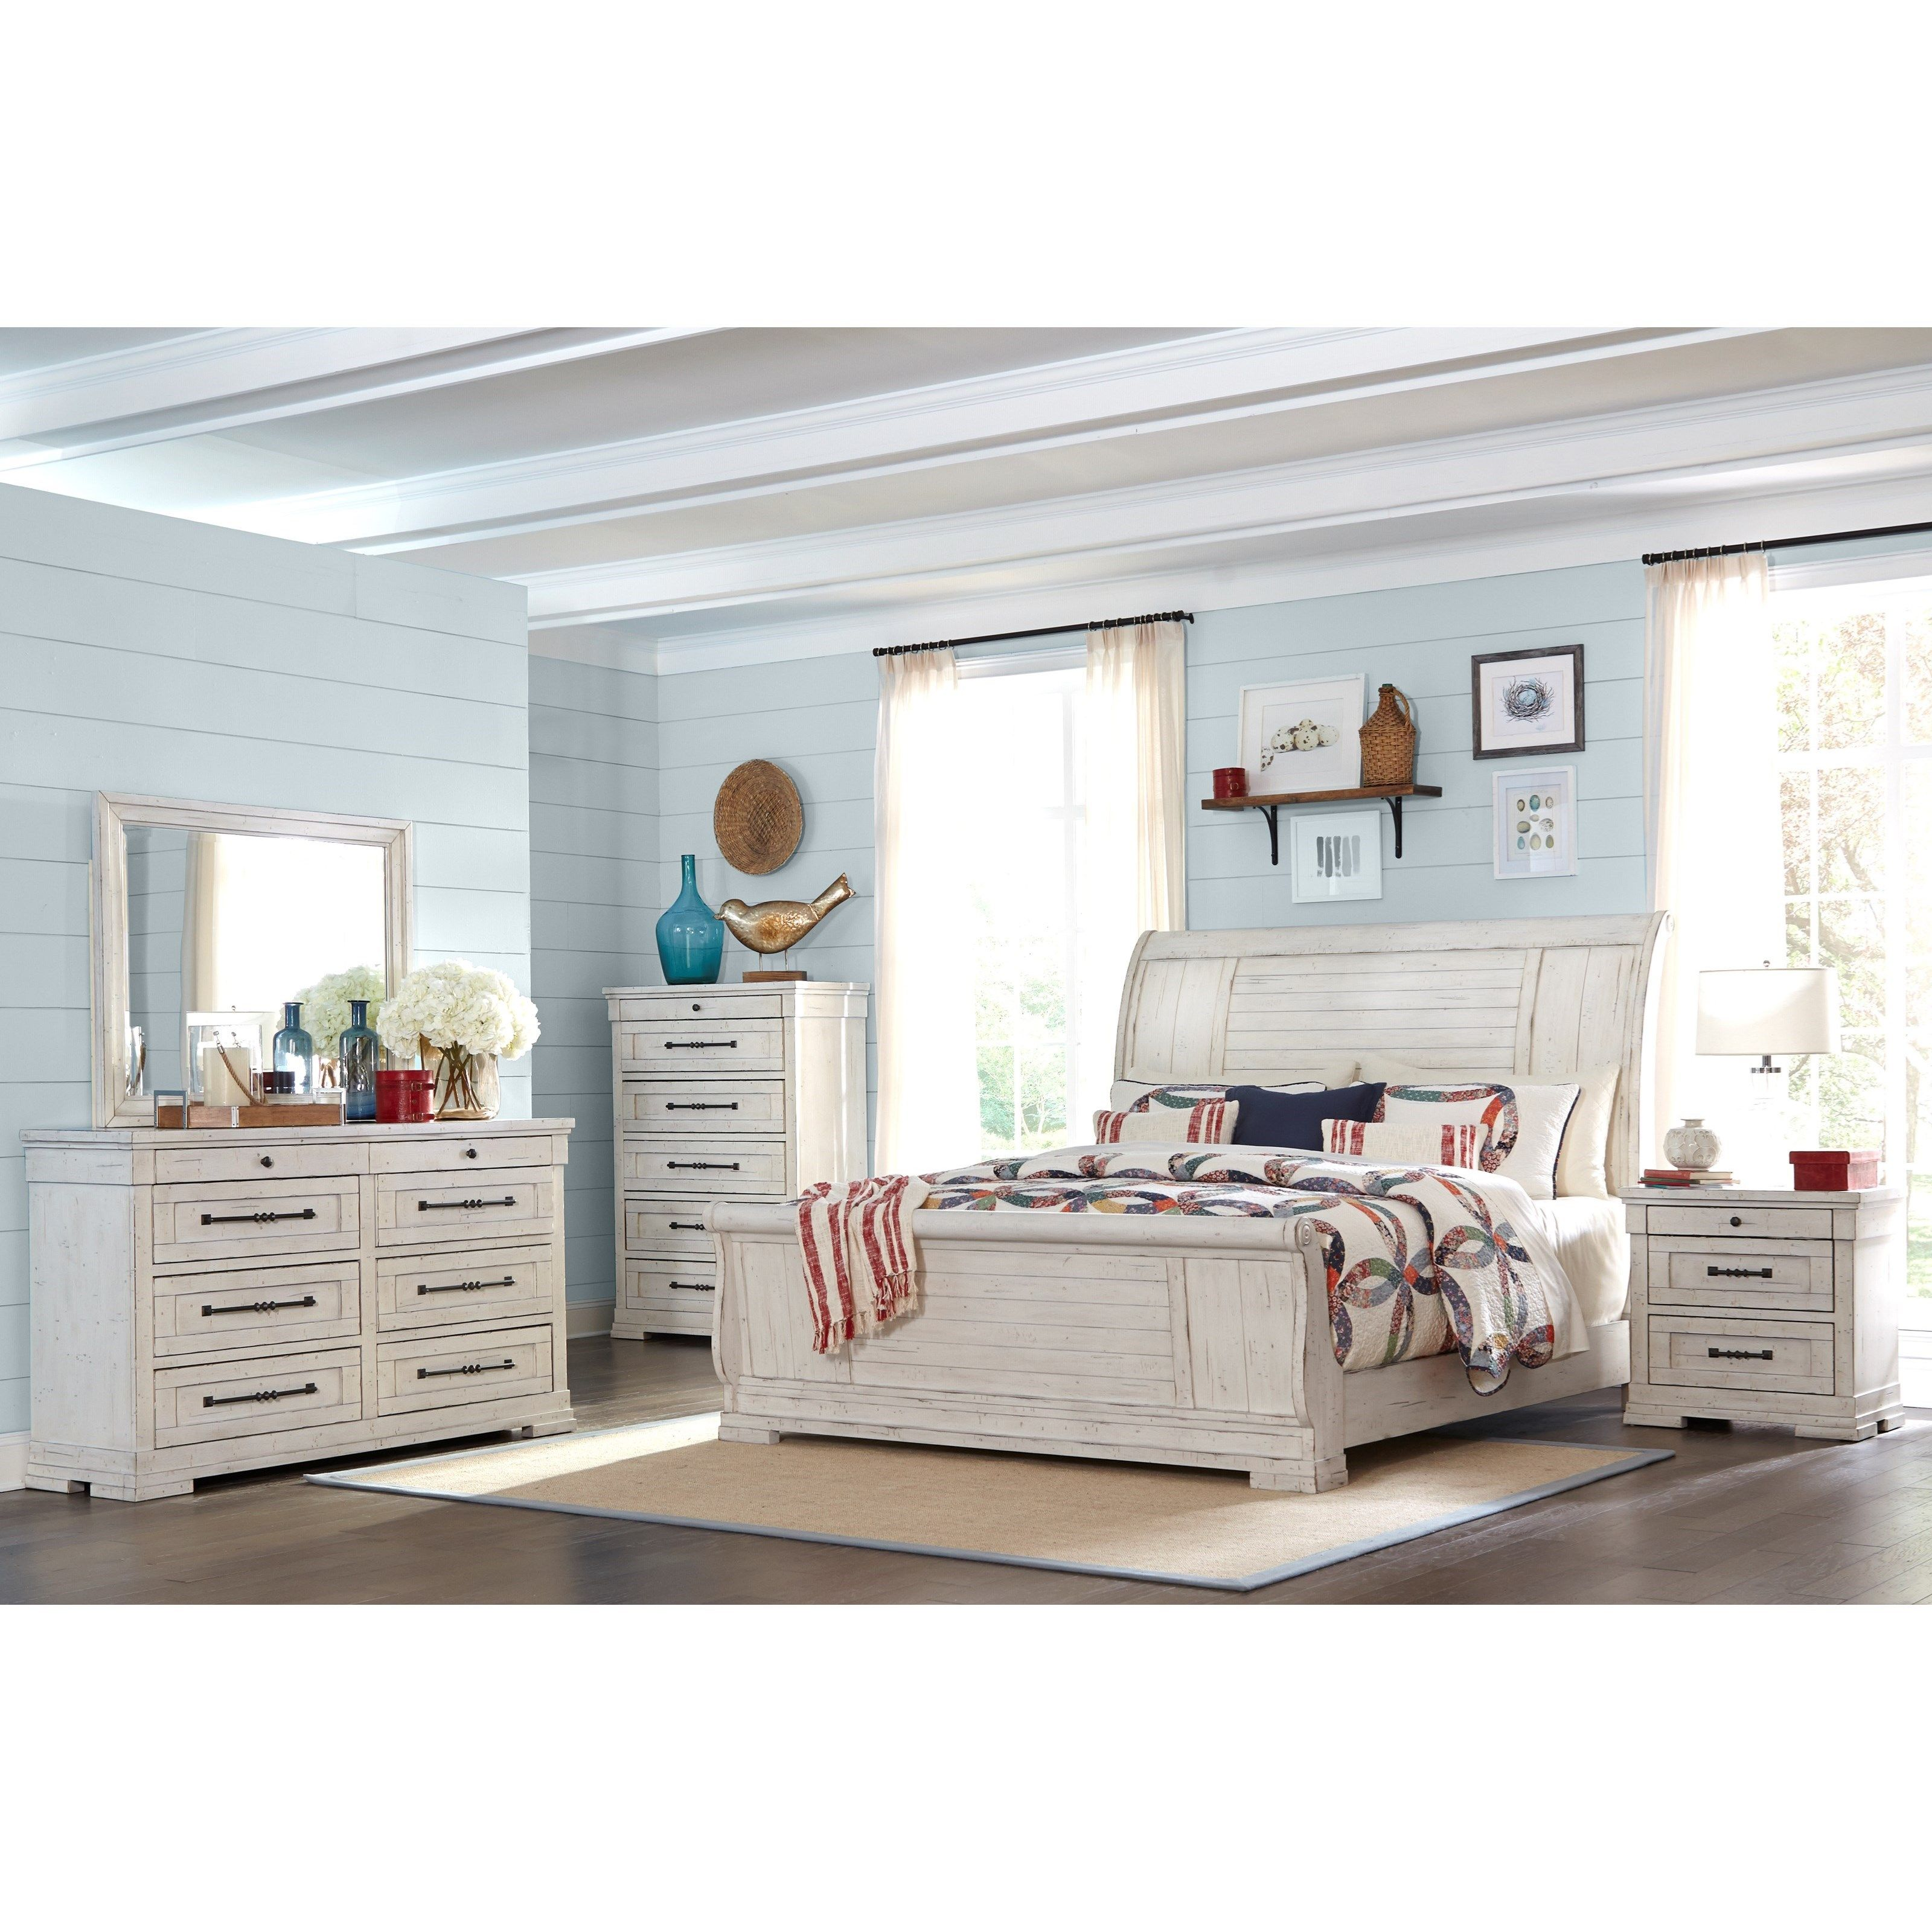 Coming Home King Bedroom Group By Trisha Yearwood Home Collection By Klaussner At Wayside Furniture King Bedroom Sets Bedroom Sets Queen Bedroom Set